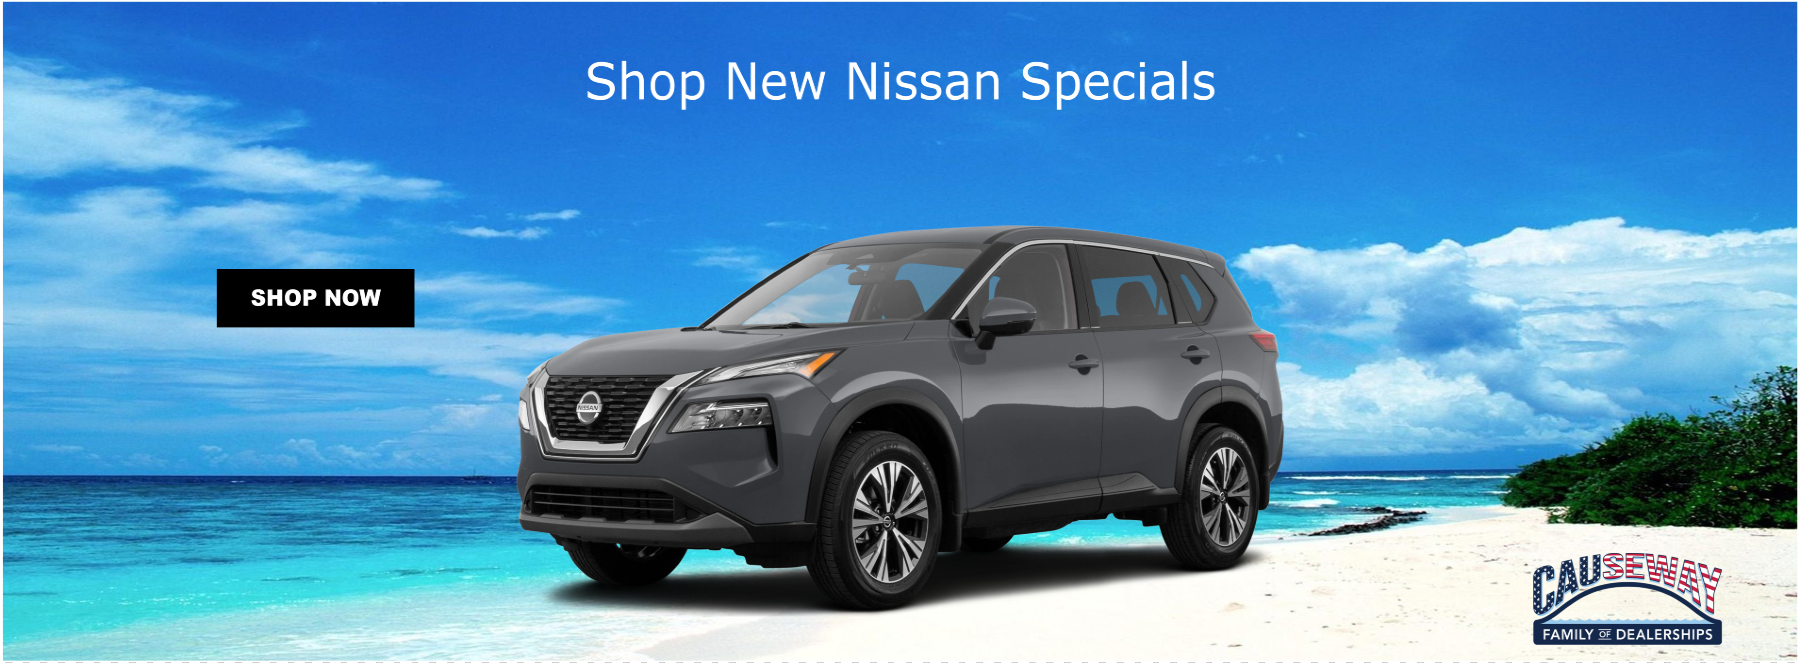 nissan new specials banner july